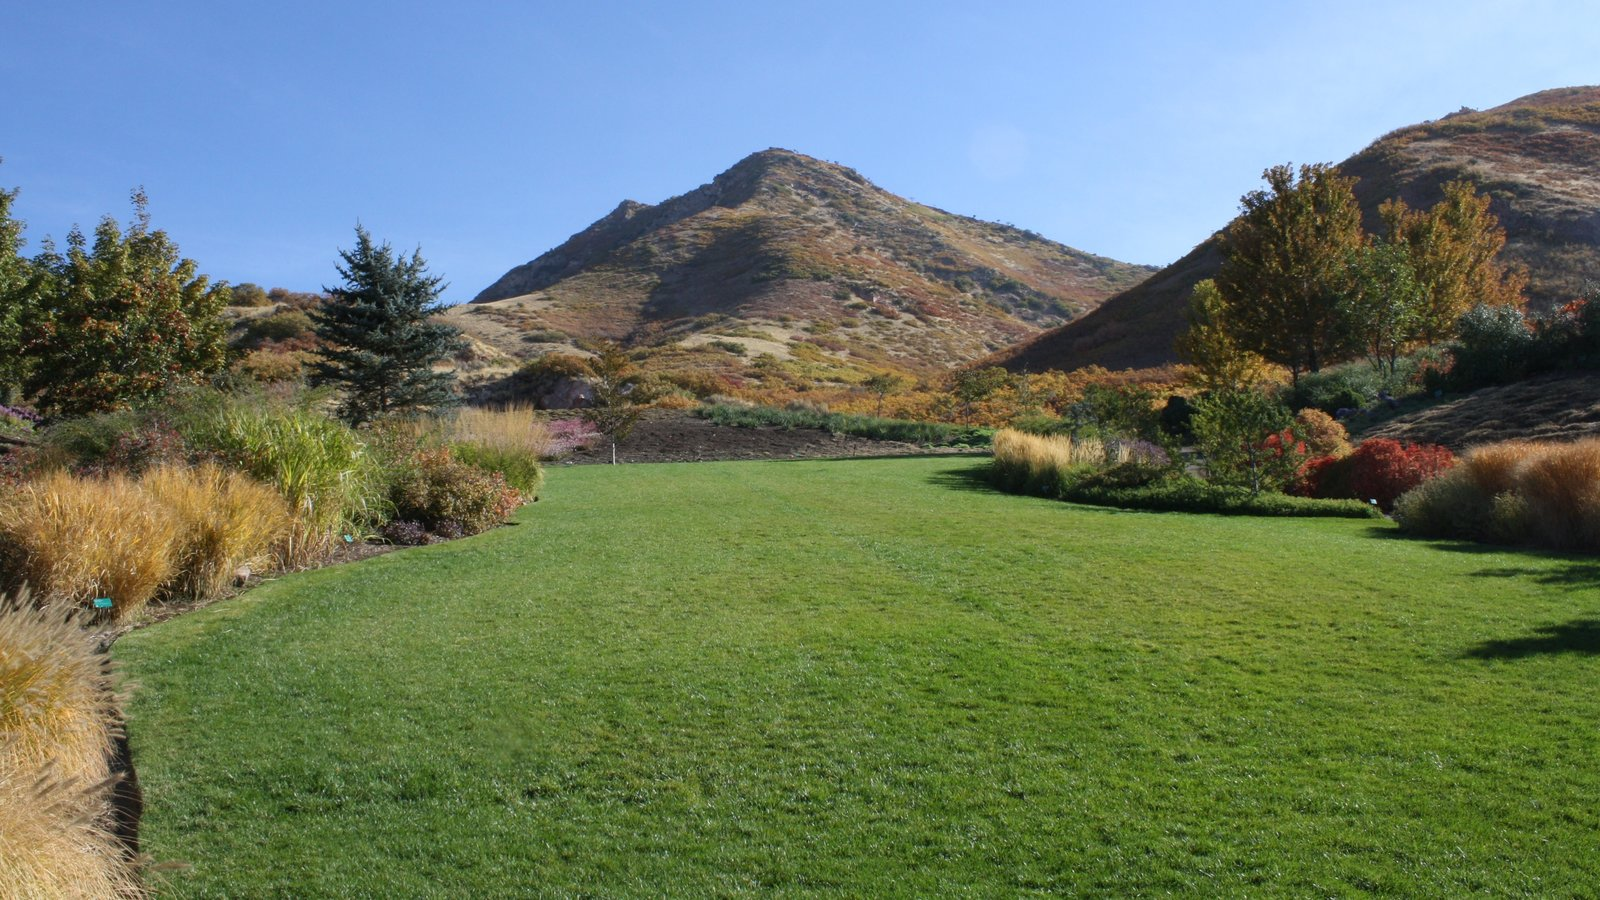 Red Butte Garden and Arboreteum featuring a park